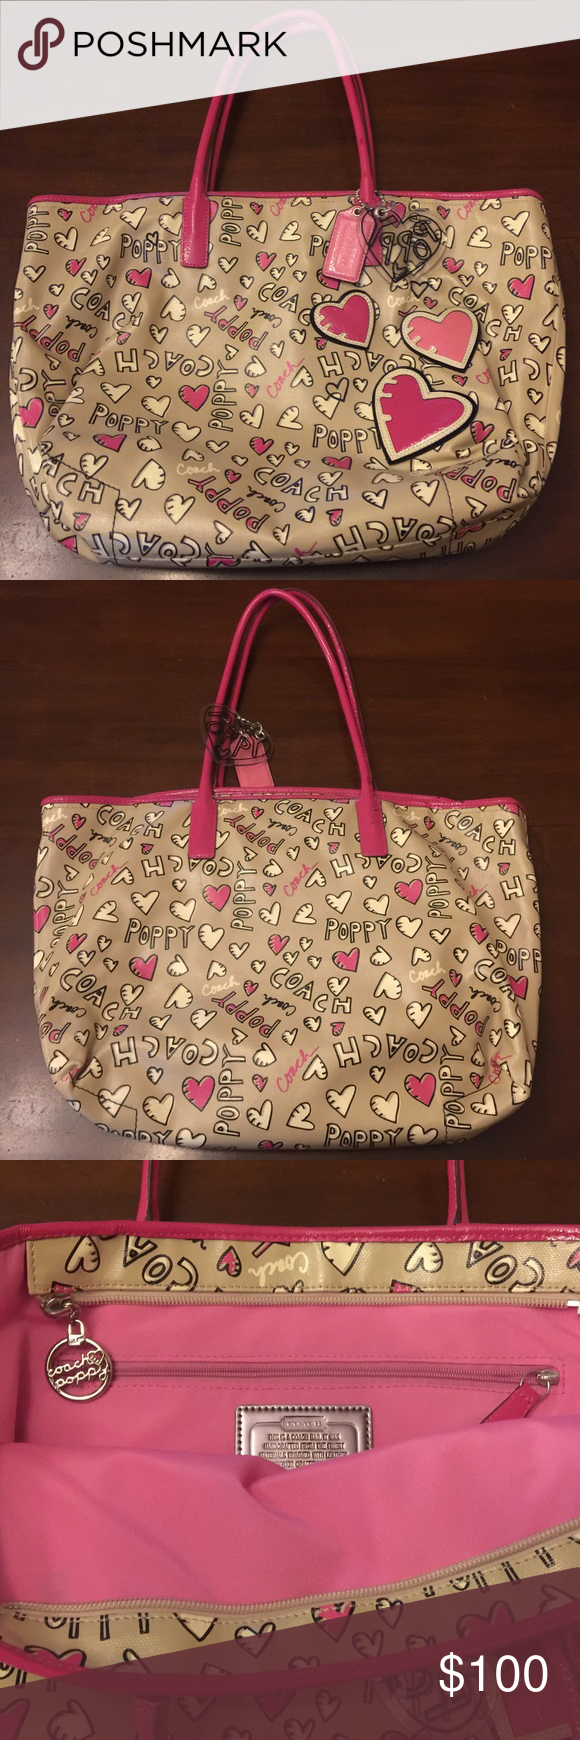 """COACH-Poppy Graffiti Heart Tote NWOT - Never used  Tote bag / Coated Canvas-Patent Leather  Multi-colored  Bag Length: 12"""" Bag Height: 9"""" Bag Depth: 5"""" Strap Drop: 8"""" Coach Bags Totes"""